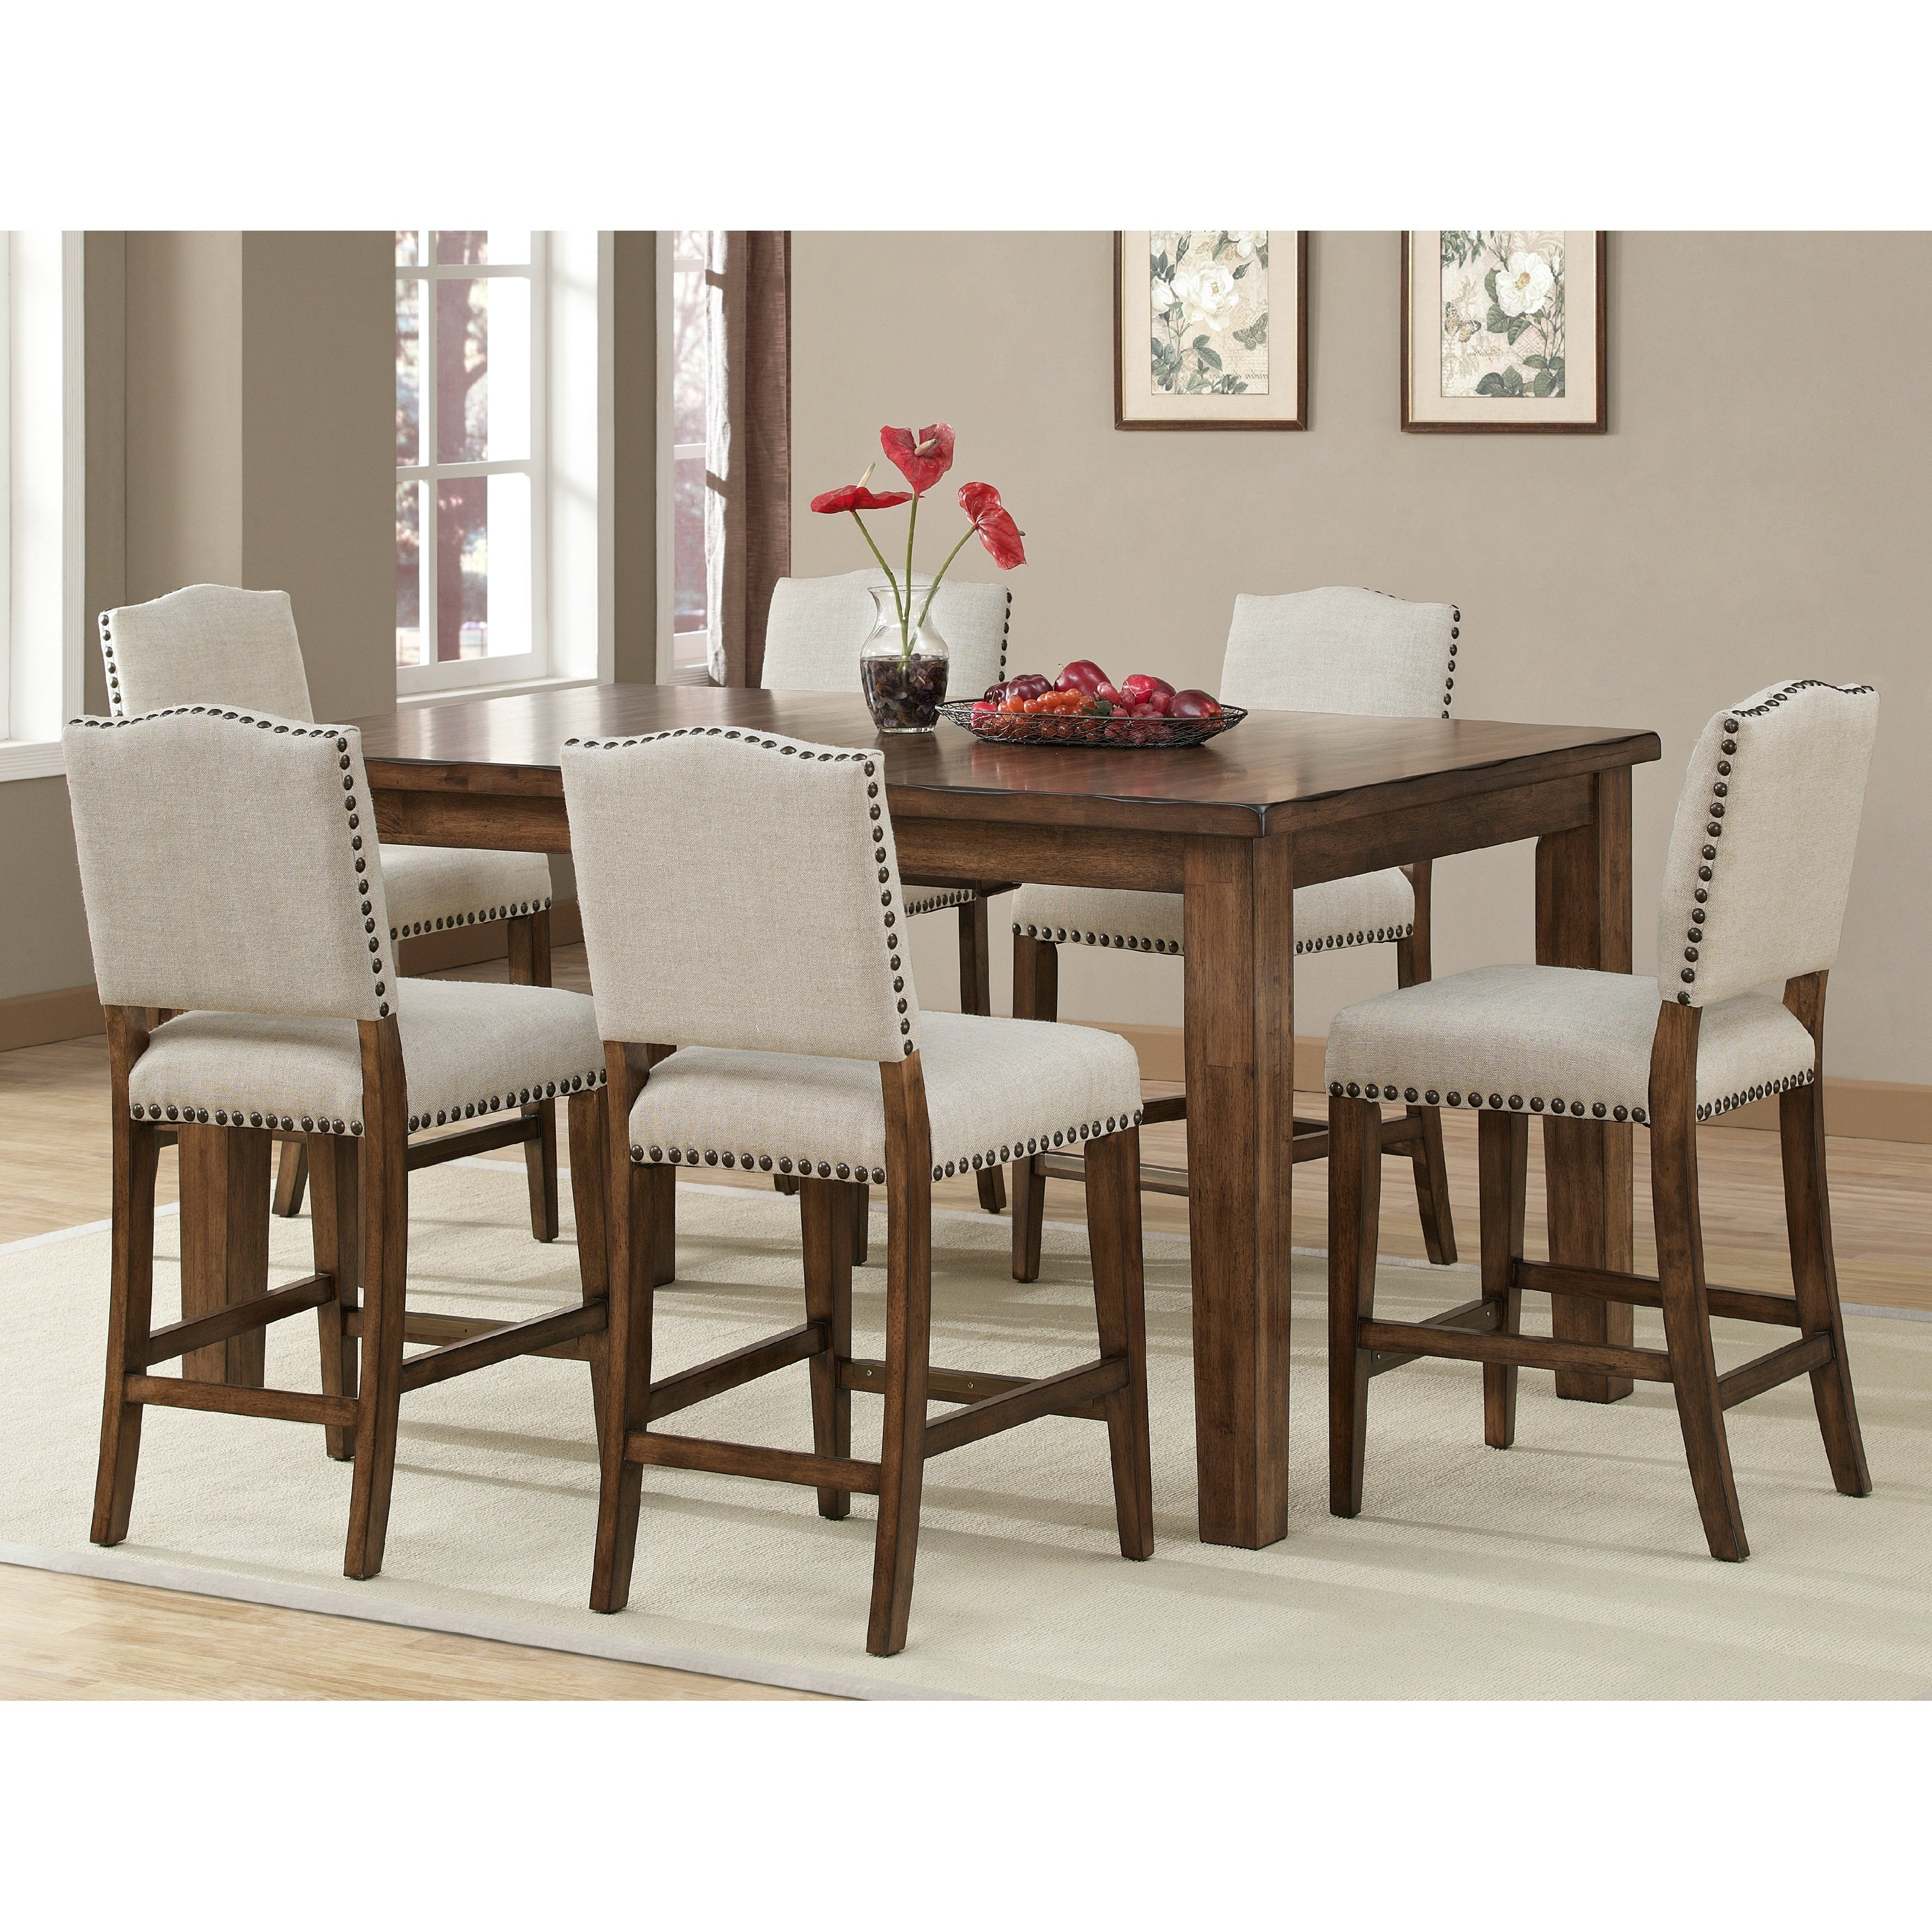 Preferred Jaxon 5 Piece Extension Round Dining Sets With Wood Chairs With Ahb Cameo Counter Height Dining Table In Coastal Grey (View 21 of 25)